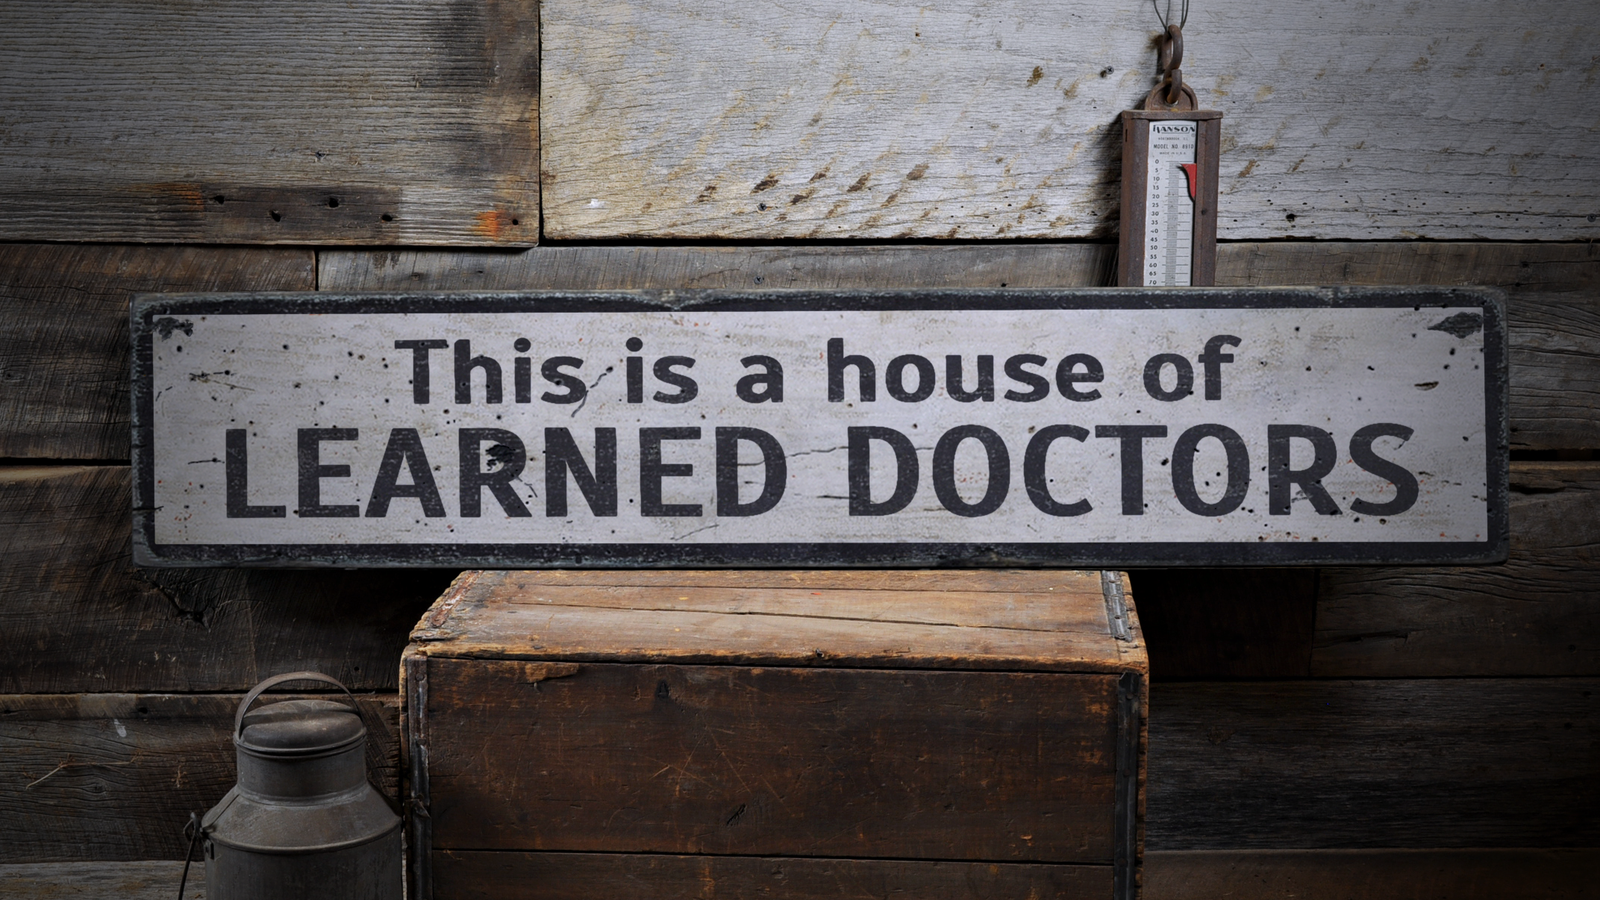 Learned Doctors, Medical, Doctor - Rustic Distressed Wood Sign ENS1000898